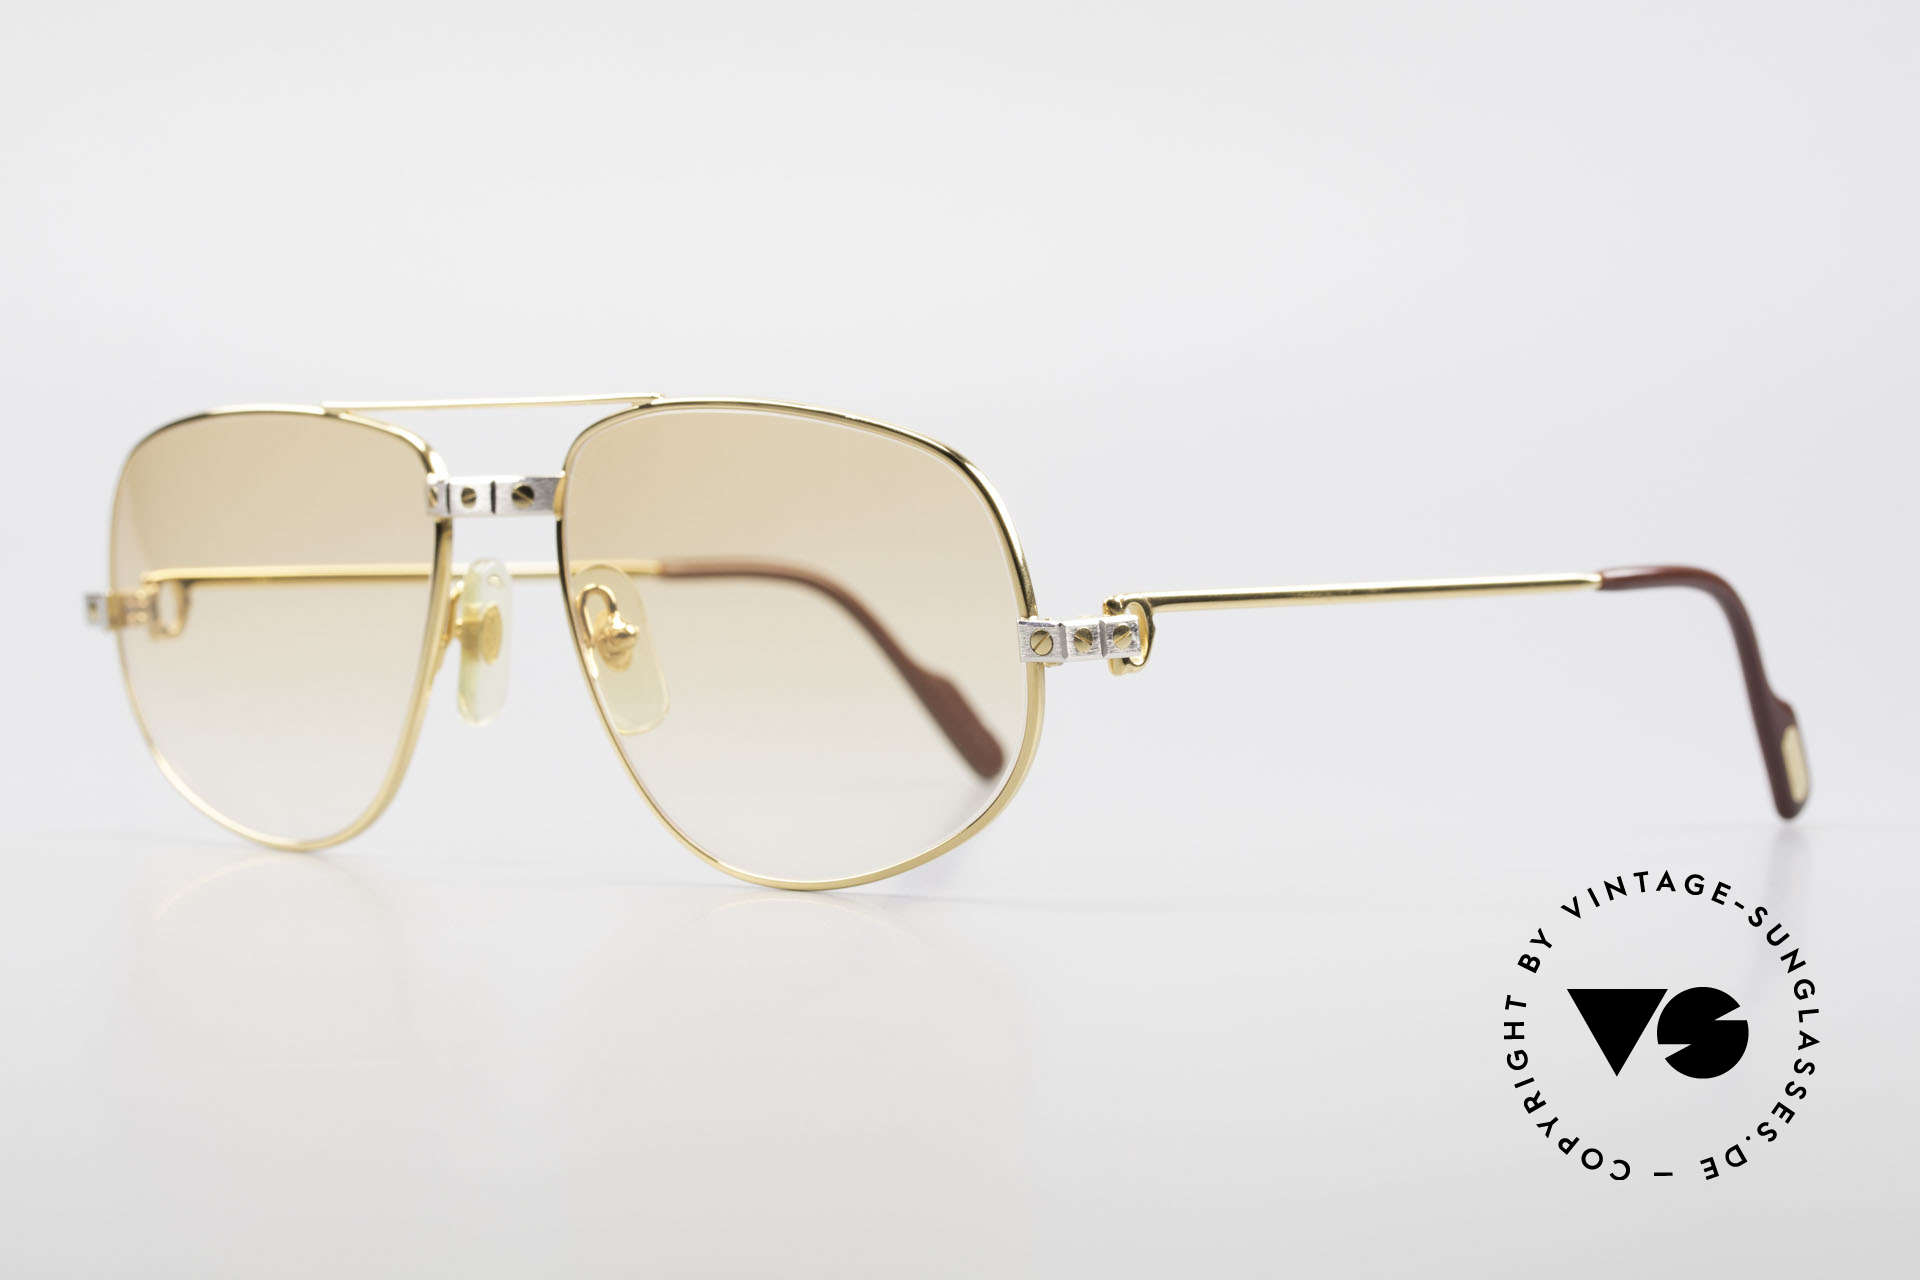 Cartier Romance Santos - L Luxury Vintage Sunglasses, this pair (with SANTOS decor) is LARGE size 58-18, 140, Made for Men